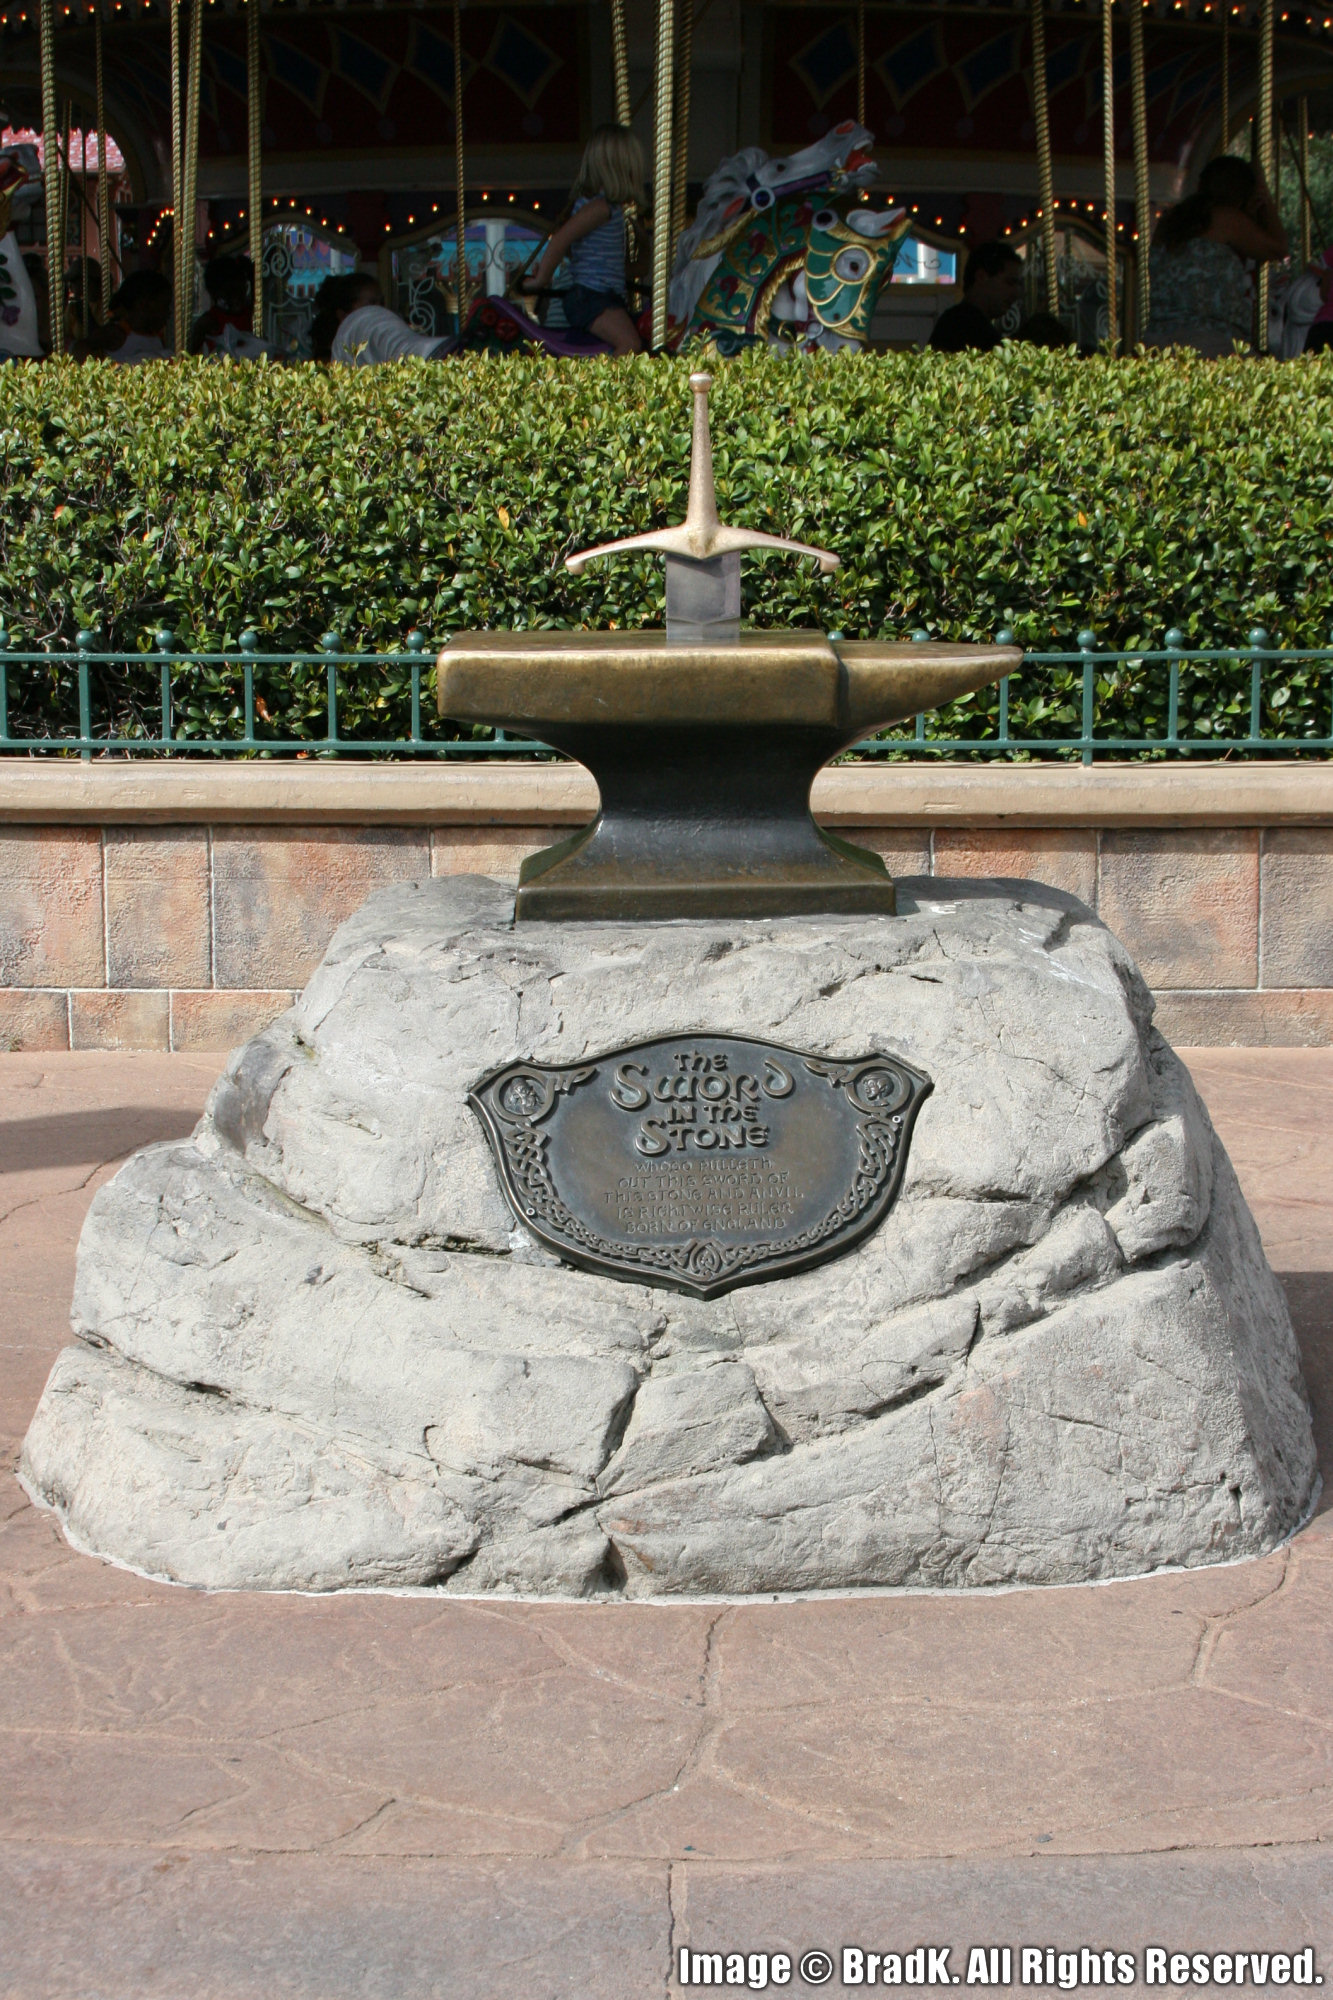 Magic Kingdom - Sword in the Stone